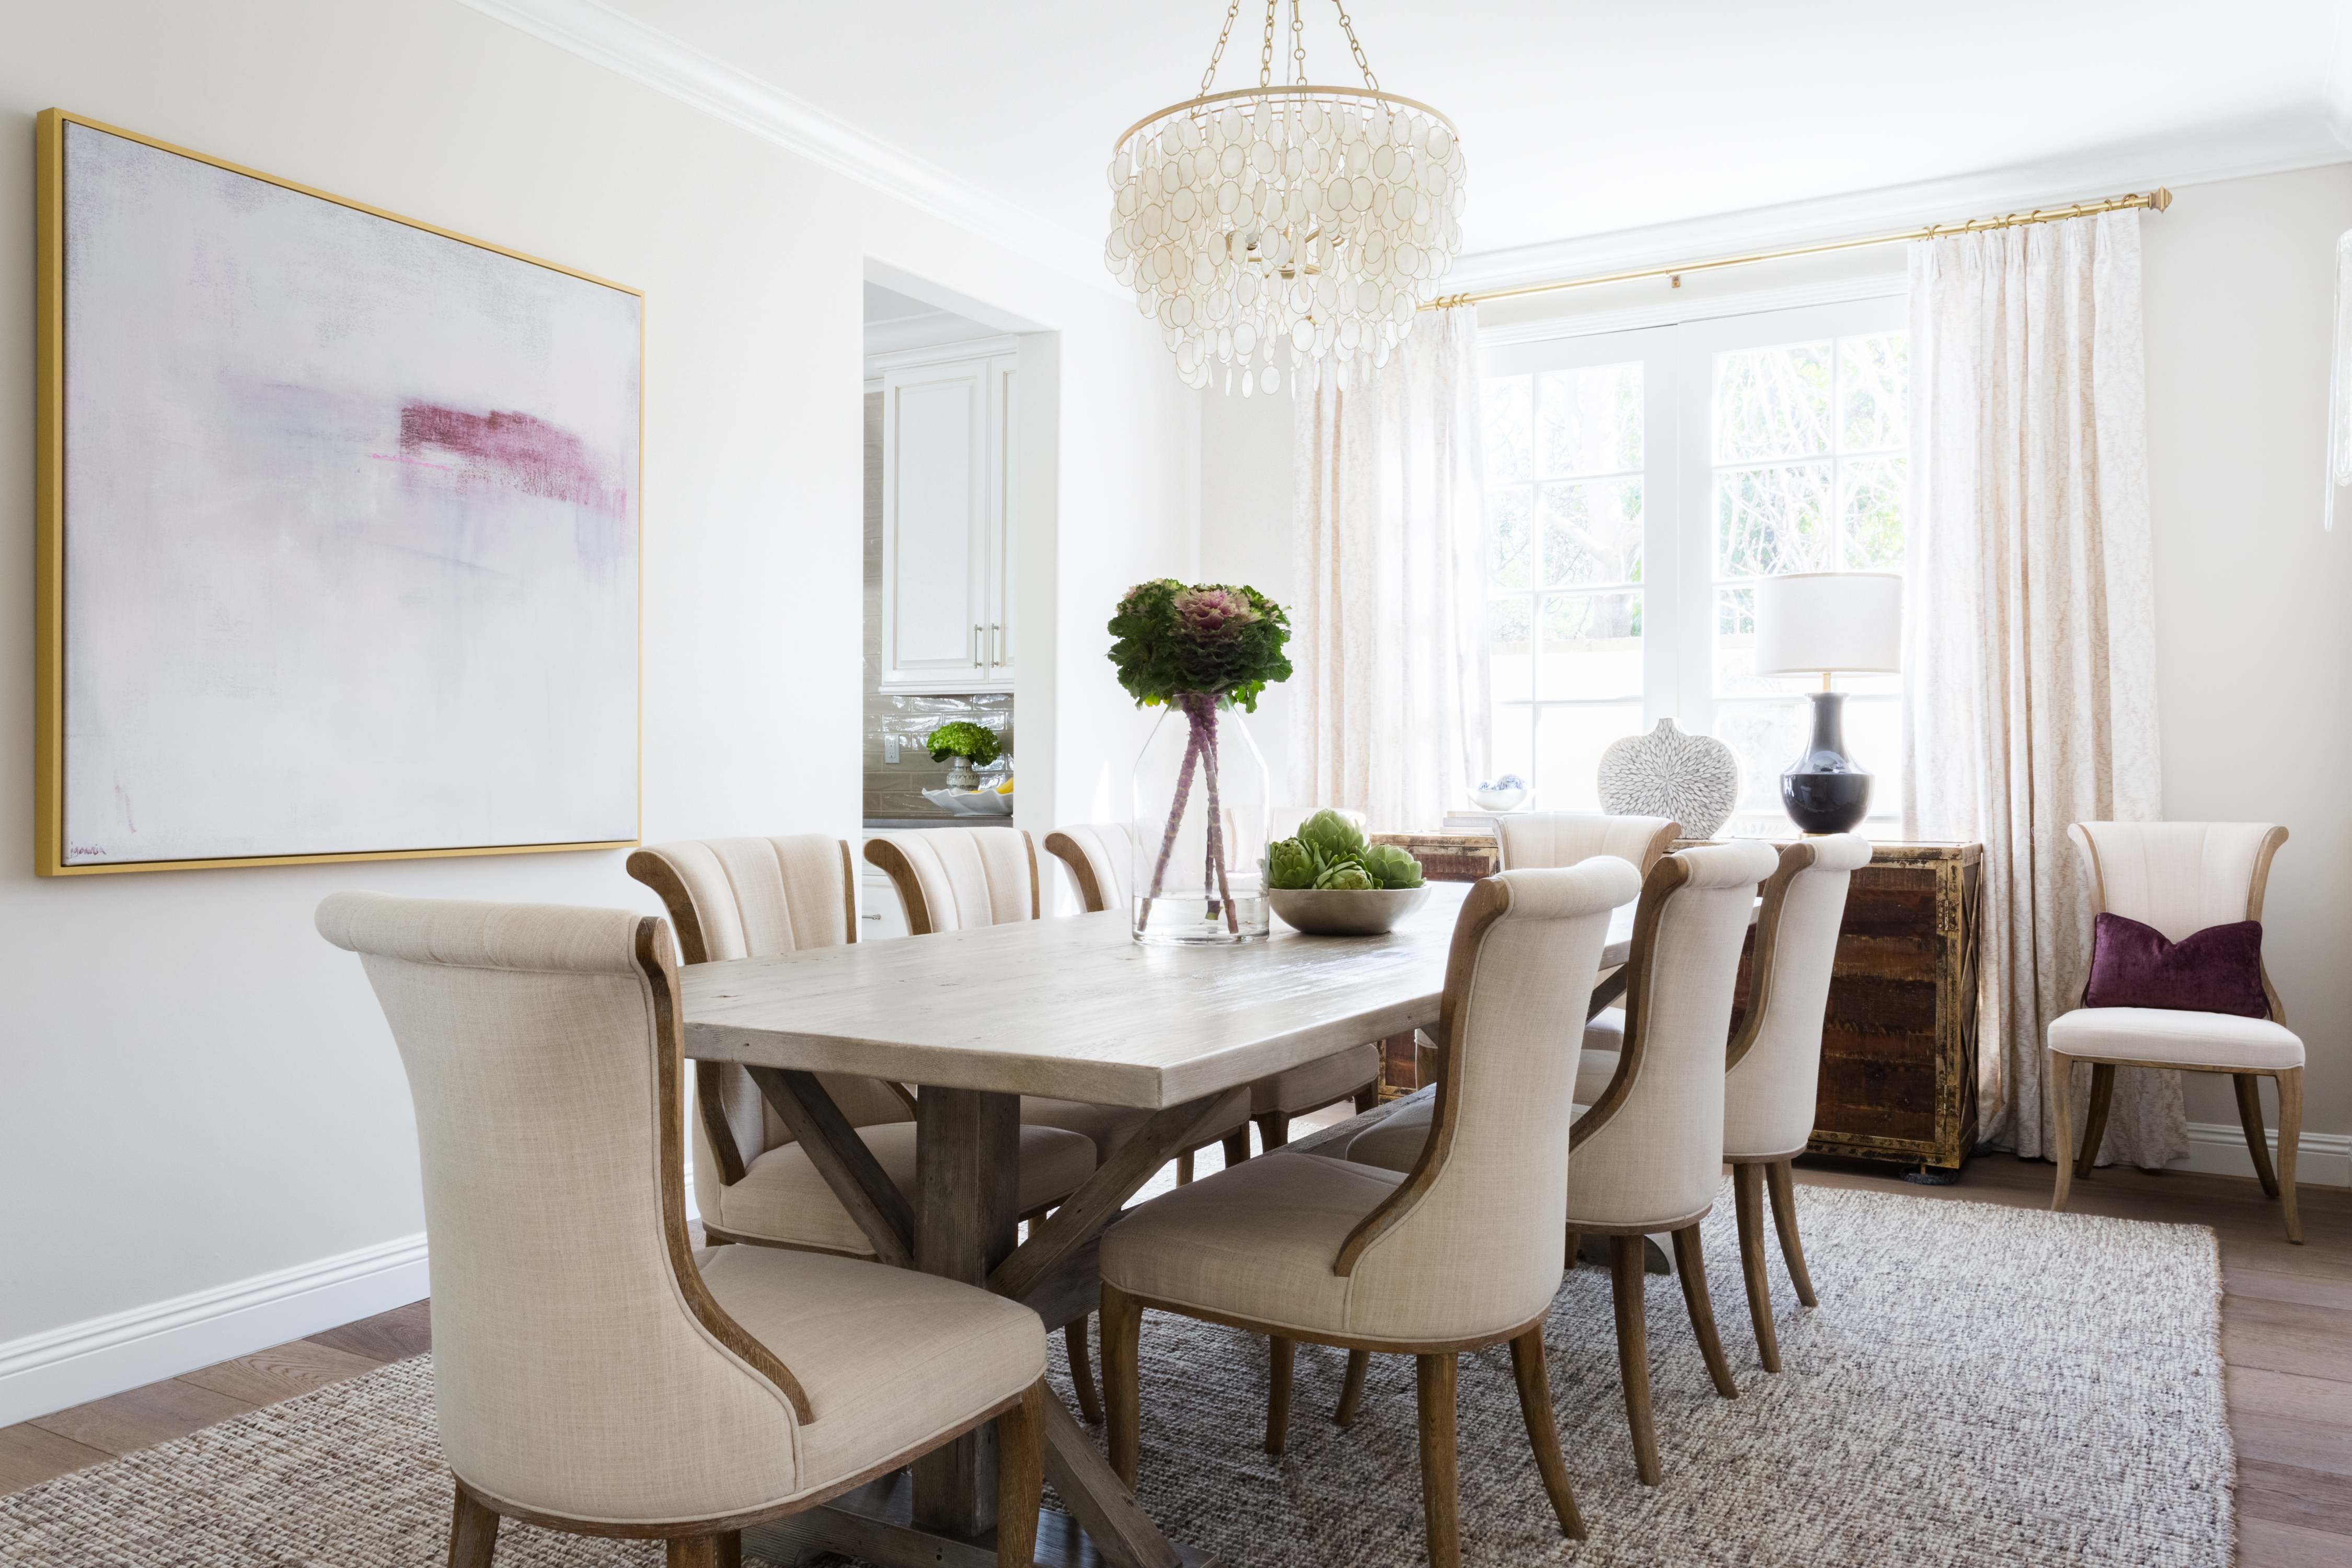 A dining room with a table and chairs  Description automatically generated with low confidence